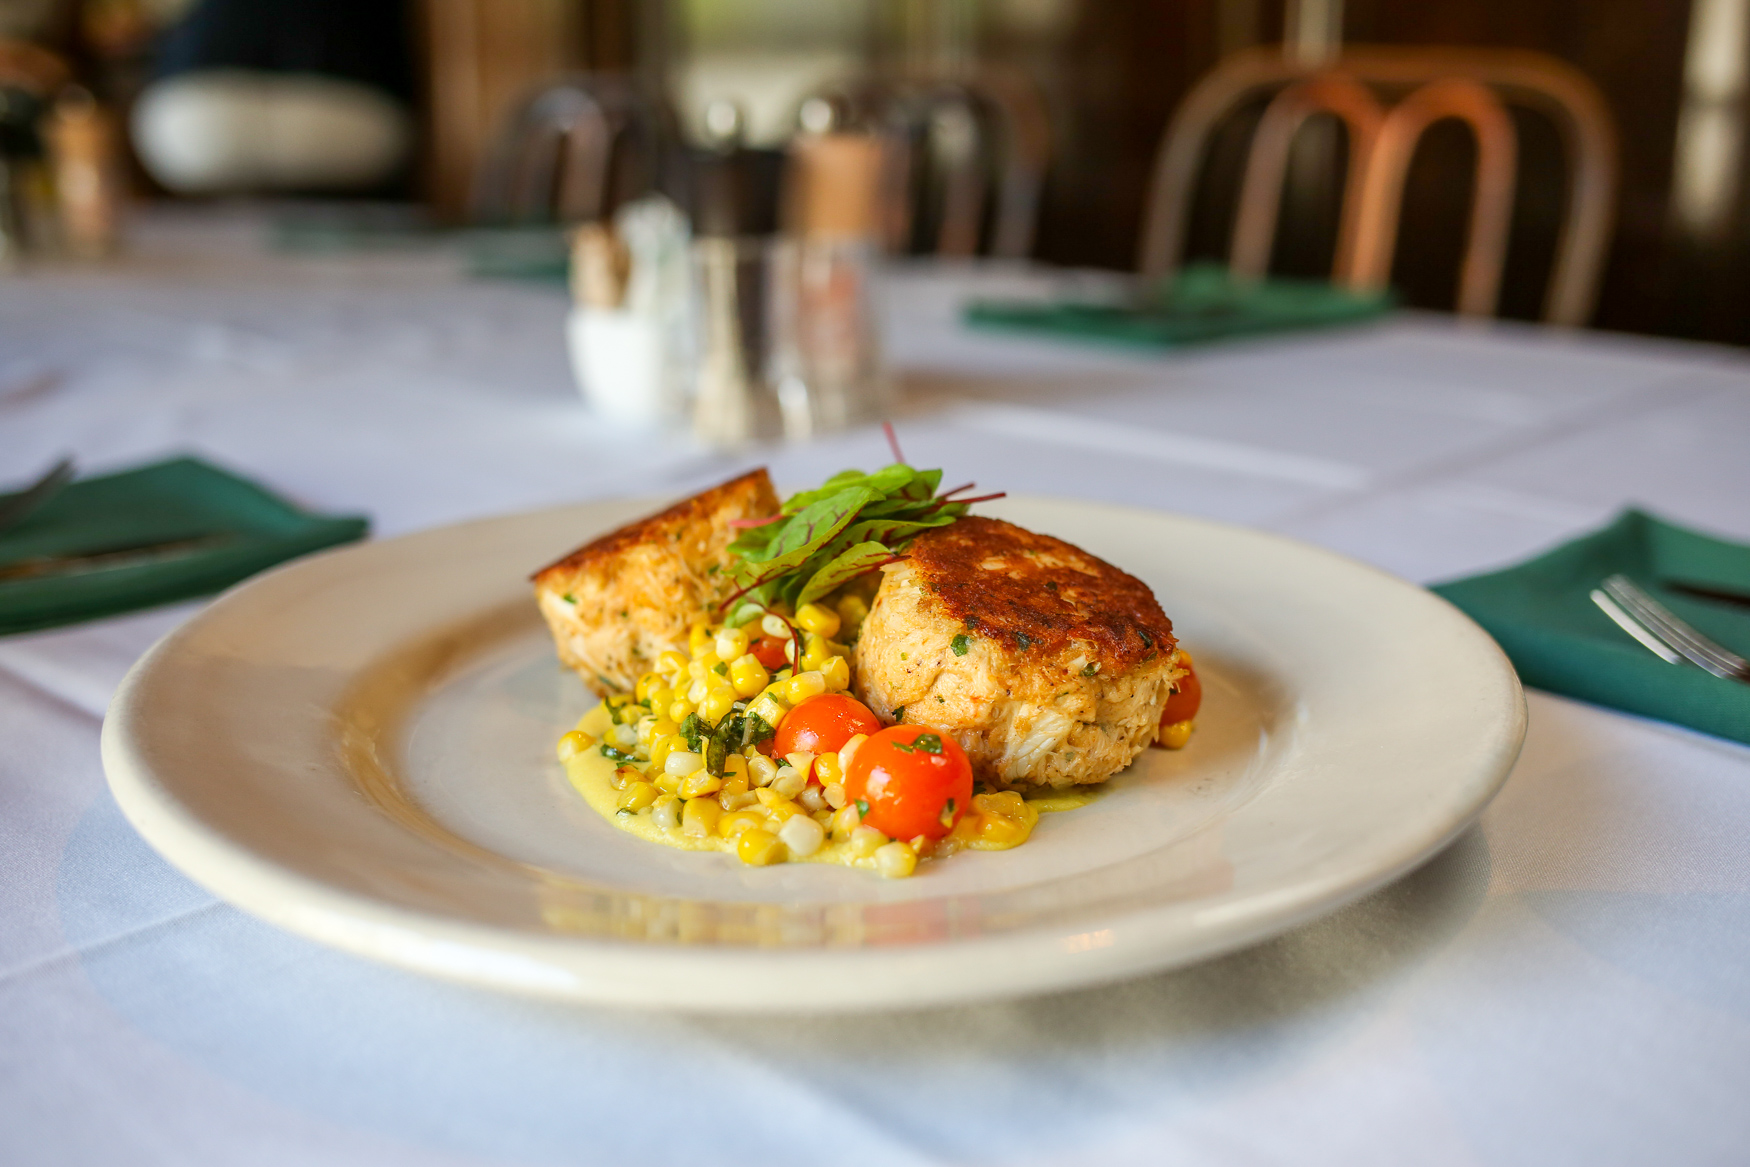 The Jumbo Lump Crab Cake, served with Chesapeake corn and tomatoes and roasted fingerling potatoes (Amanda Andrade-Rhoades/DC Refined)